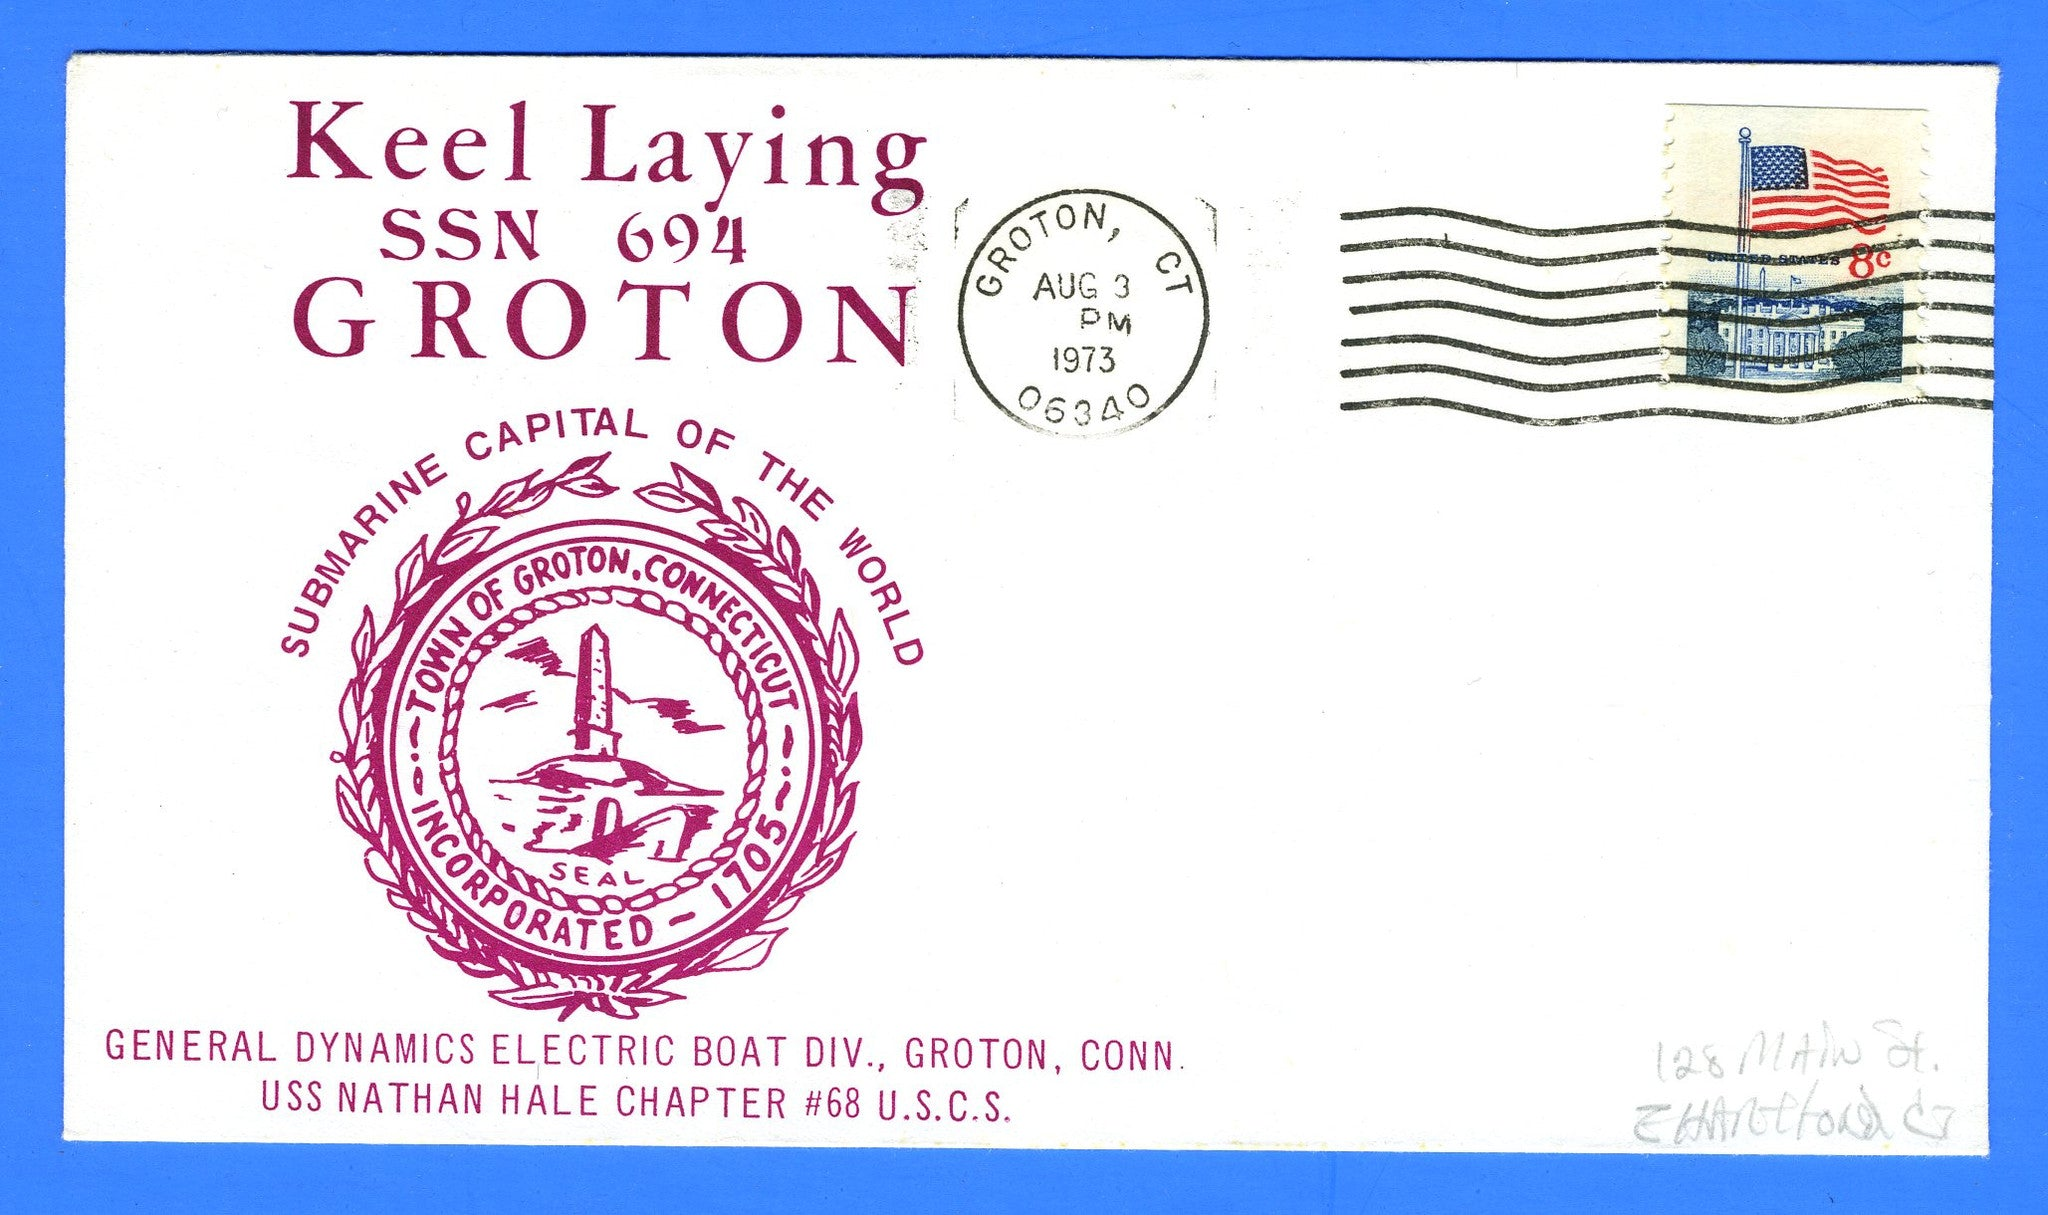 USS Groton SSN-694 Keel Laid August 3, 1973 - Cachet by USS Nathan Hale Chapter No. 68, USCS